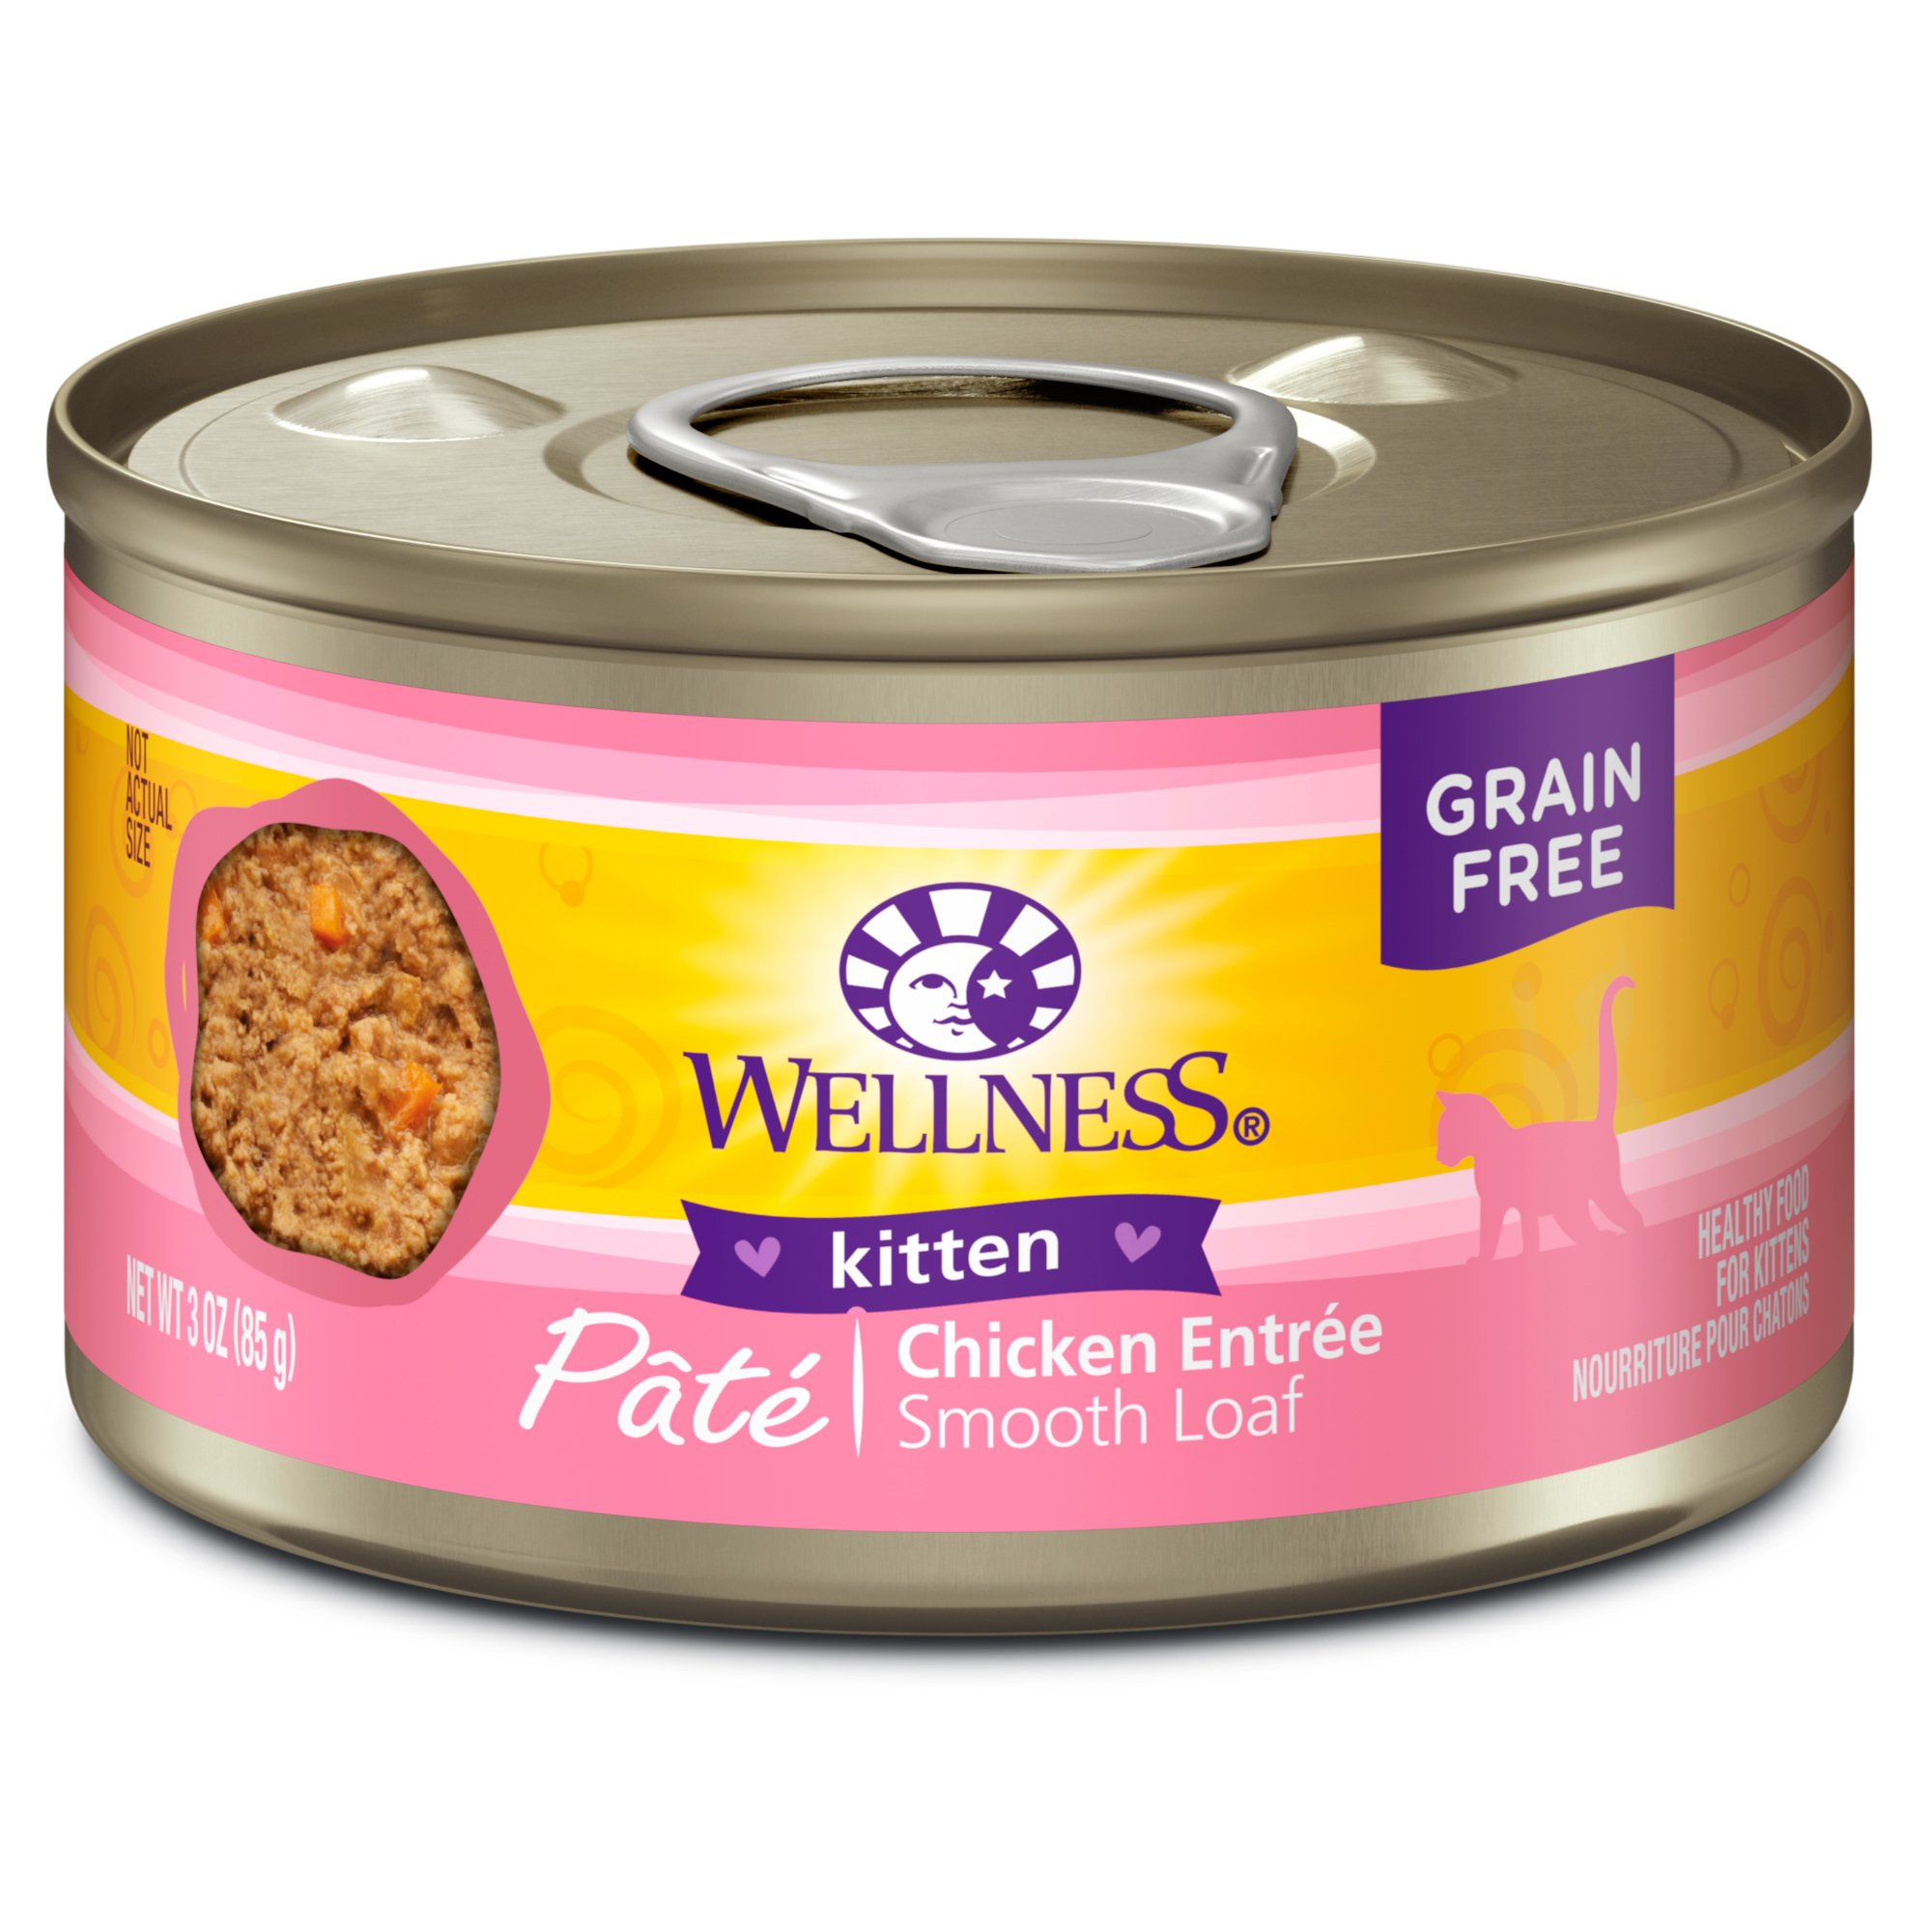 Wellness Natural Grain Free Wet Canned Cat Food, Kitten, 3-Ounce Can (Pack Of 24) by Wellness Natural Pet Food